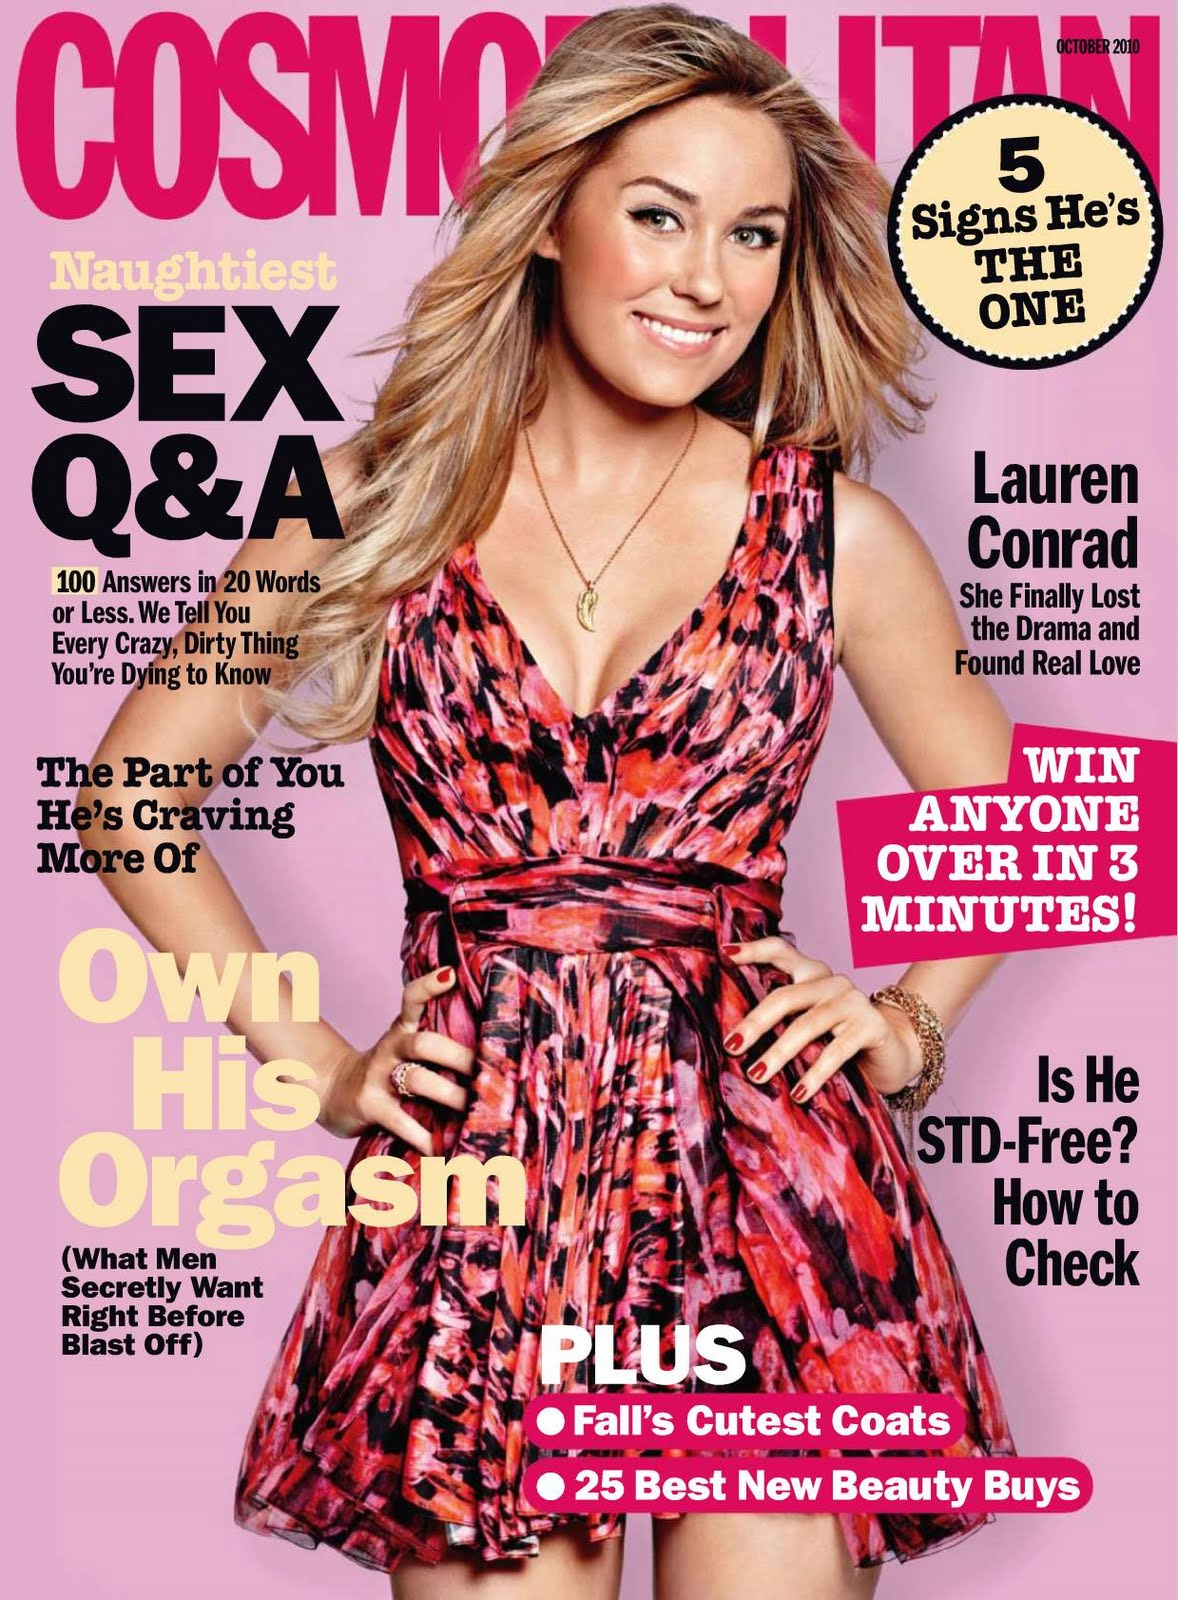 Lauren Conrad on the cover of Cosmopolitan Magazine